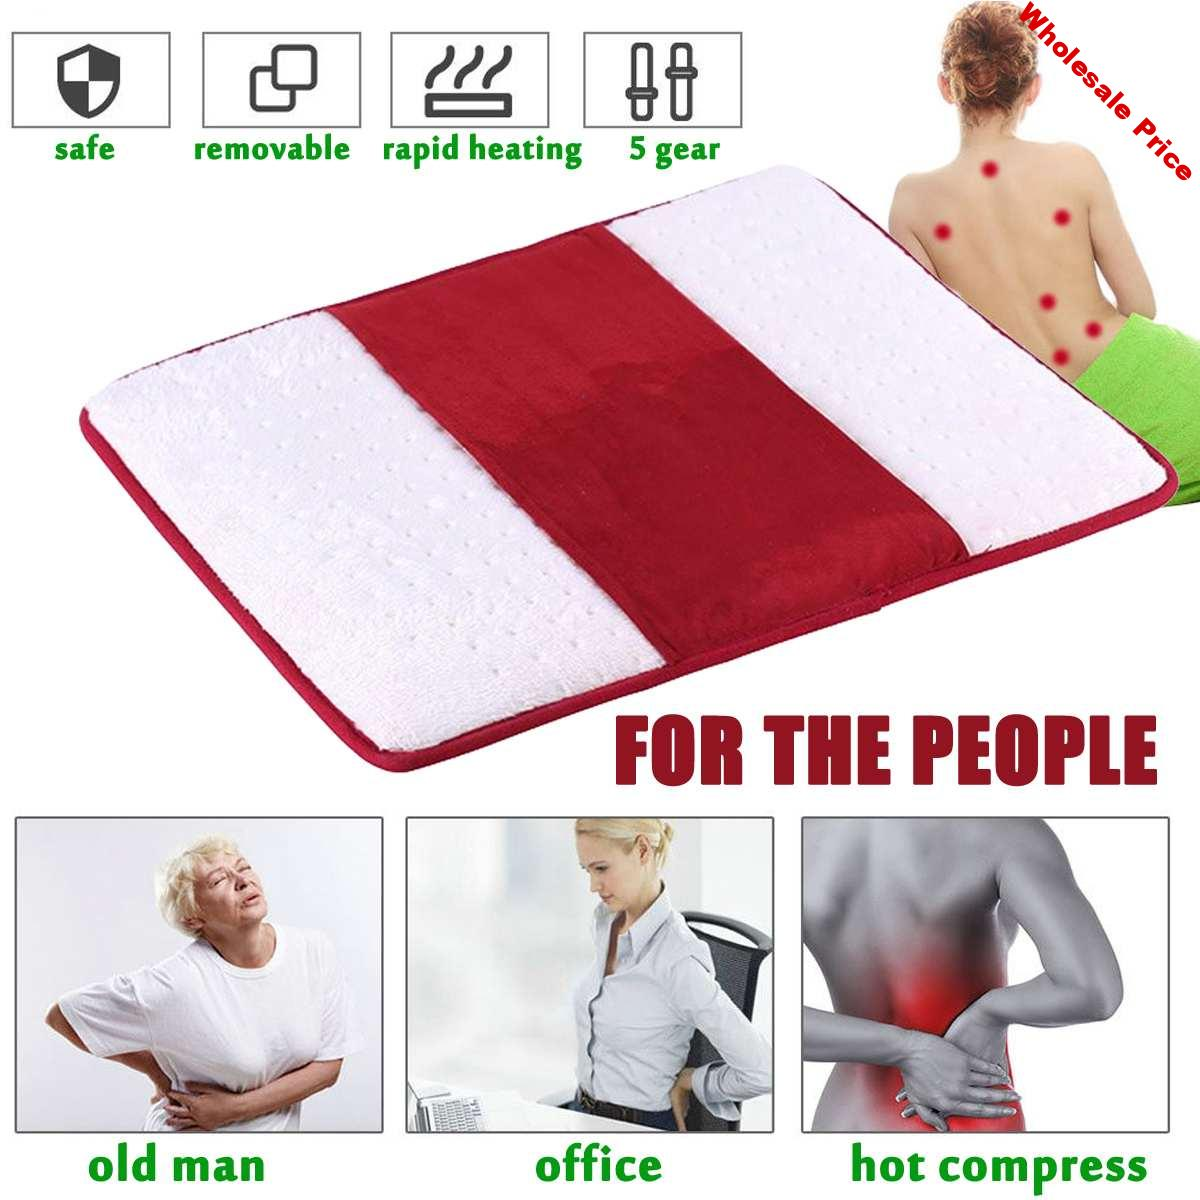 220V Electric Heated Pad 5 Gear Heating Mat Adjustable Temperature Winter Warming Seat Cushion Carpet Neck Shoulder Pain Relief